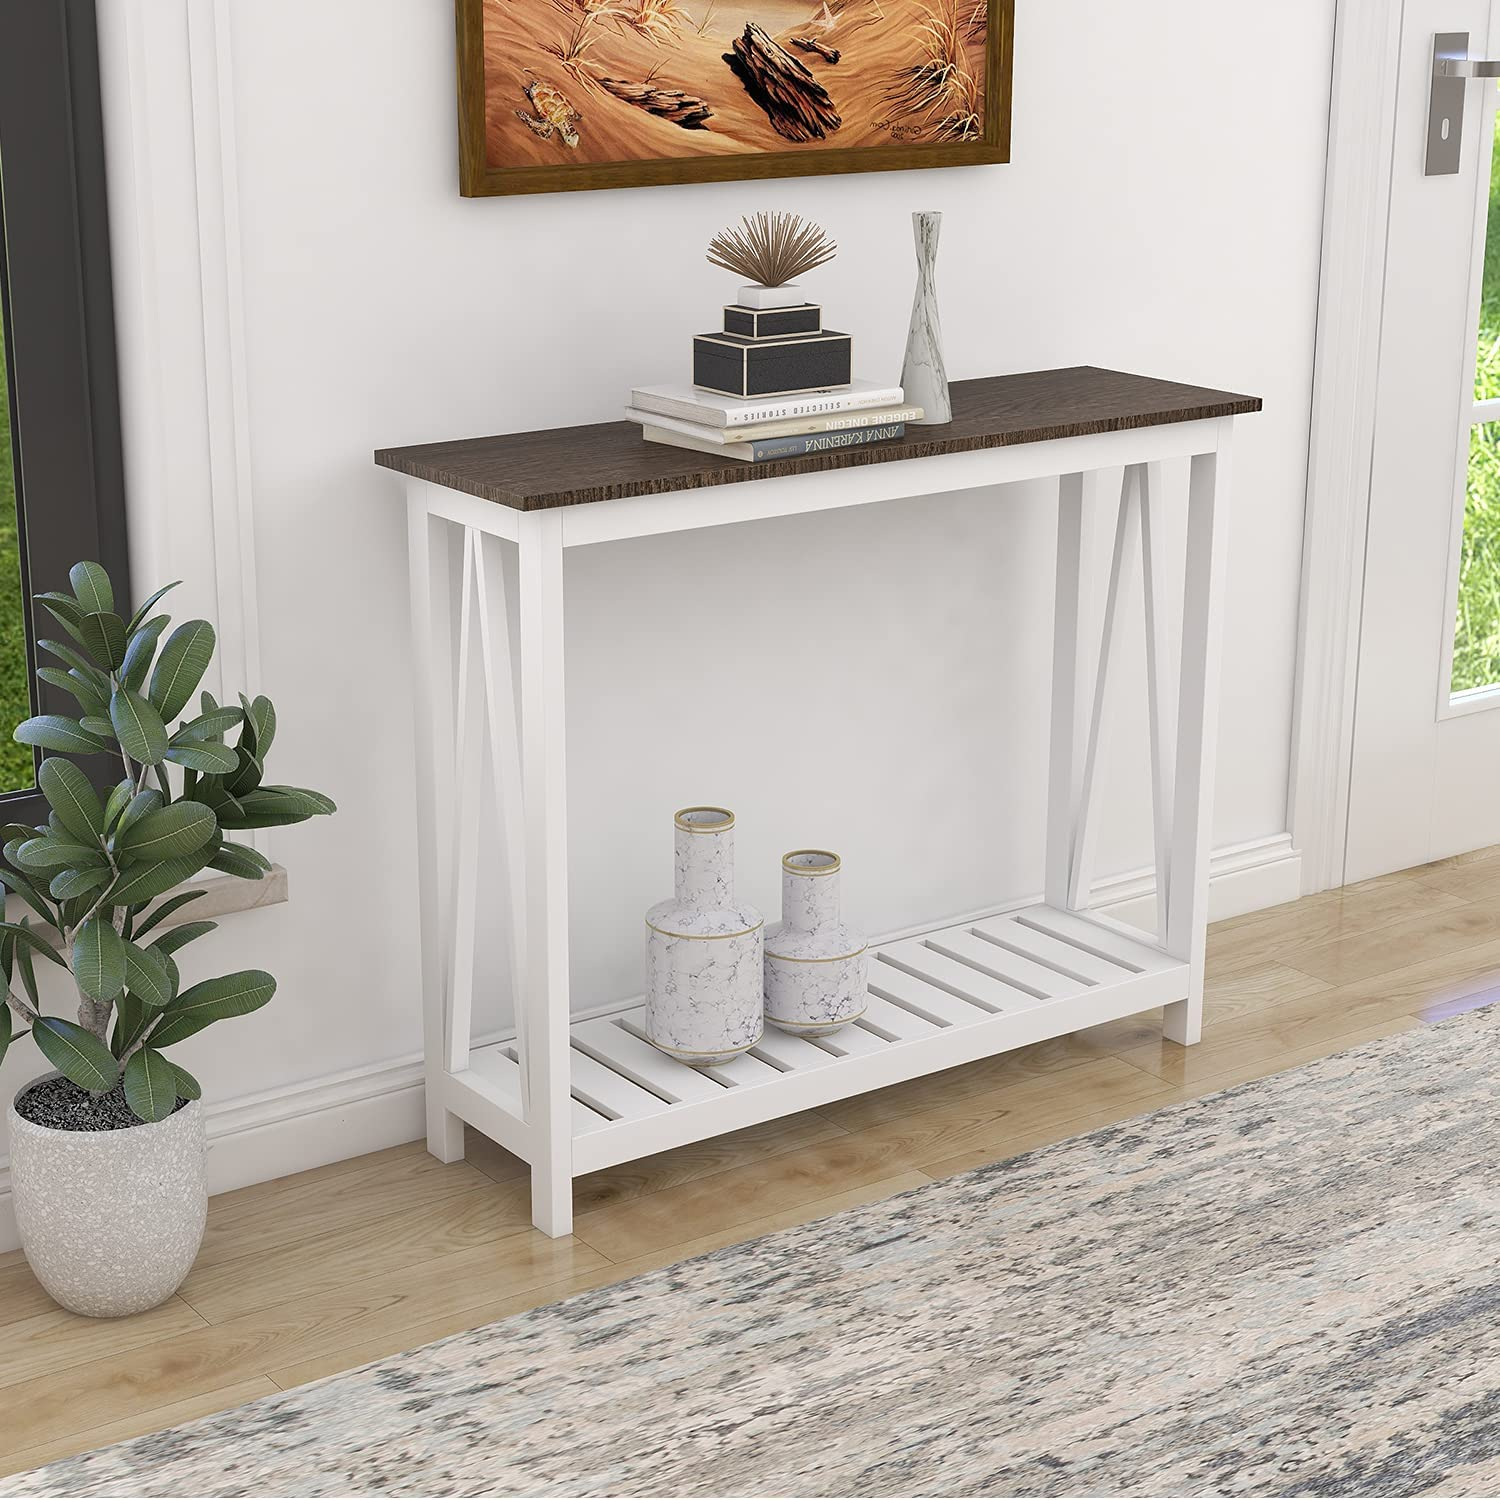 ChooChoo Cheap mail order specialty store Console Table for Entryway Tables Farm Minneapolis Mall Room Sofa Living